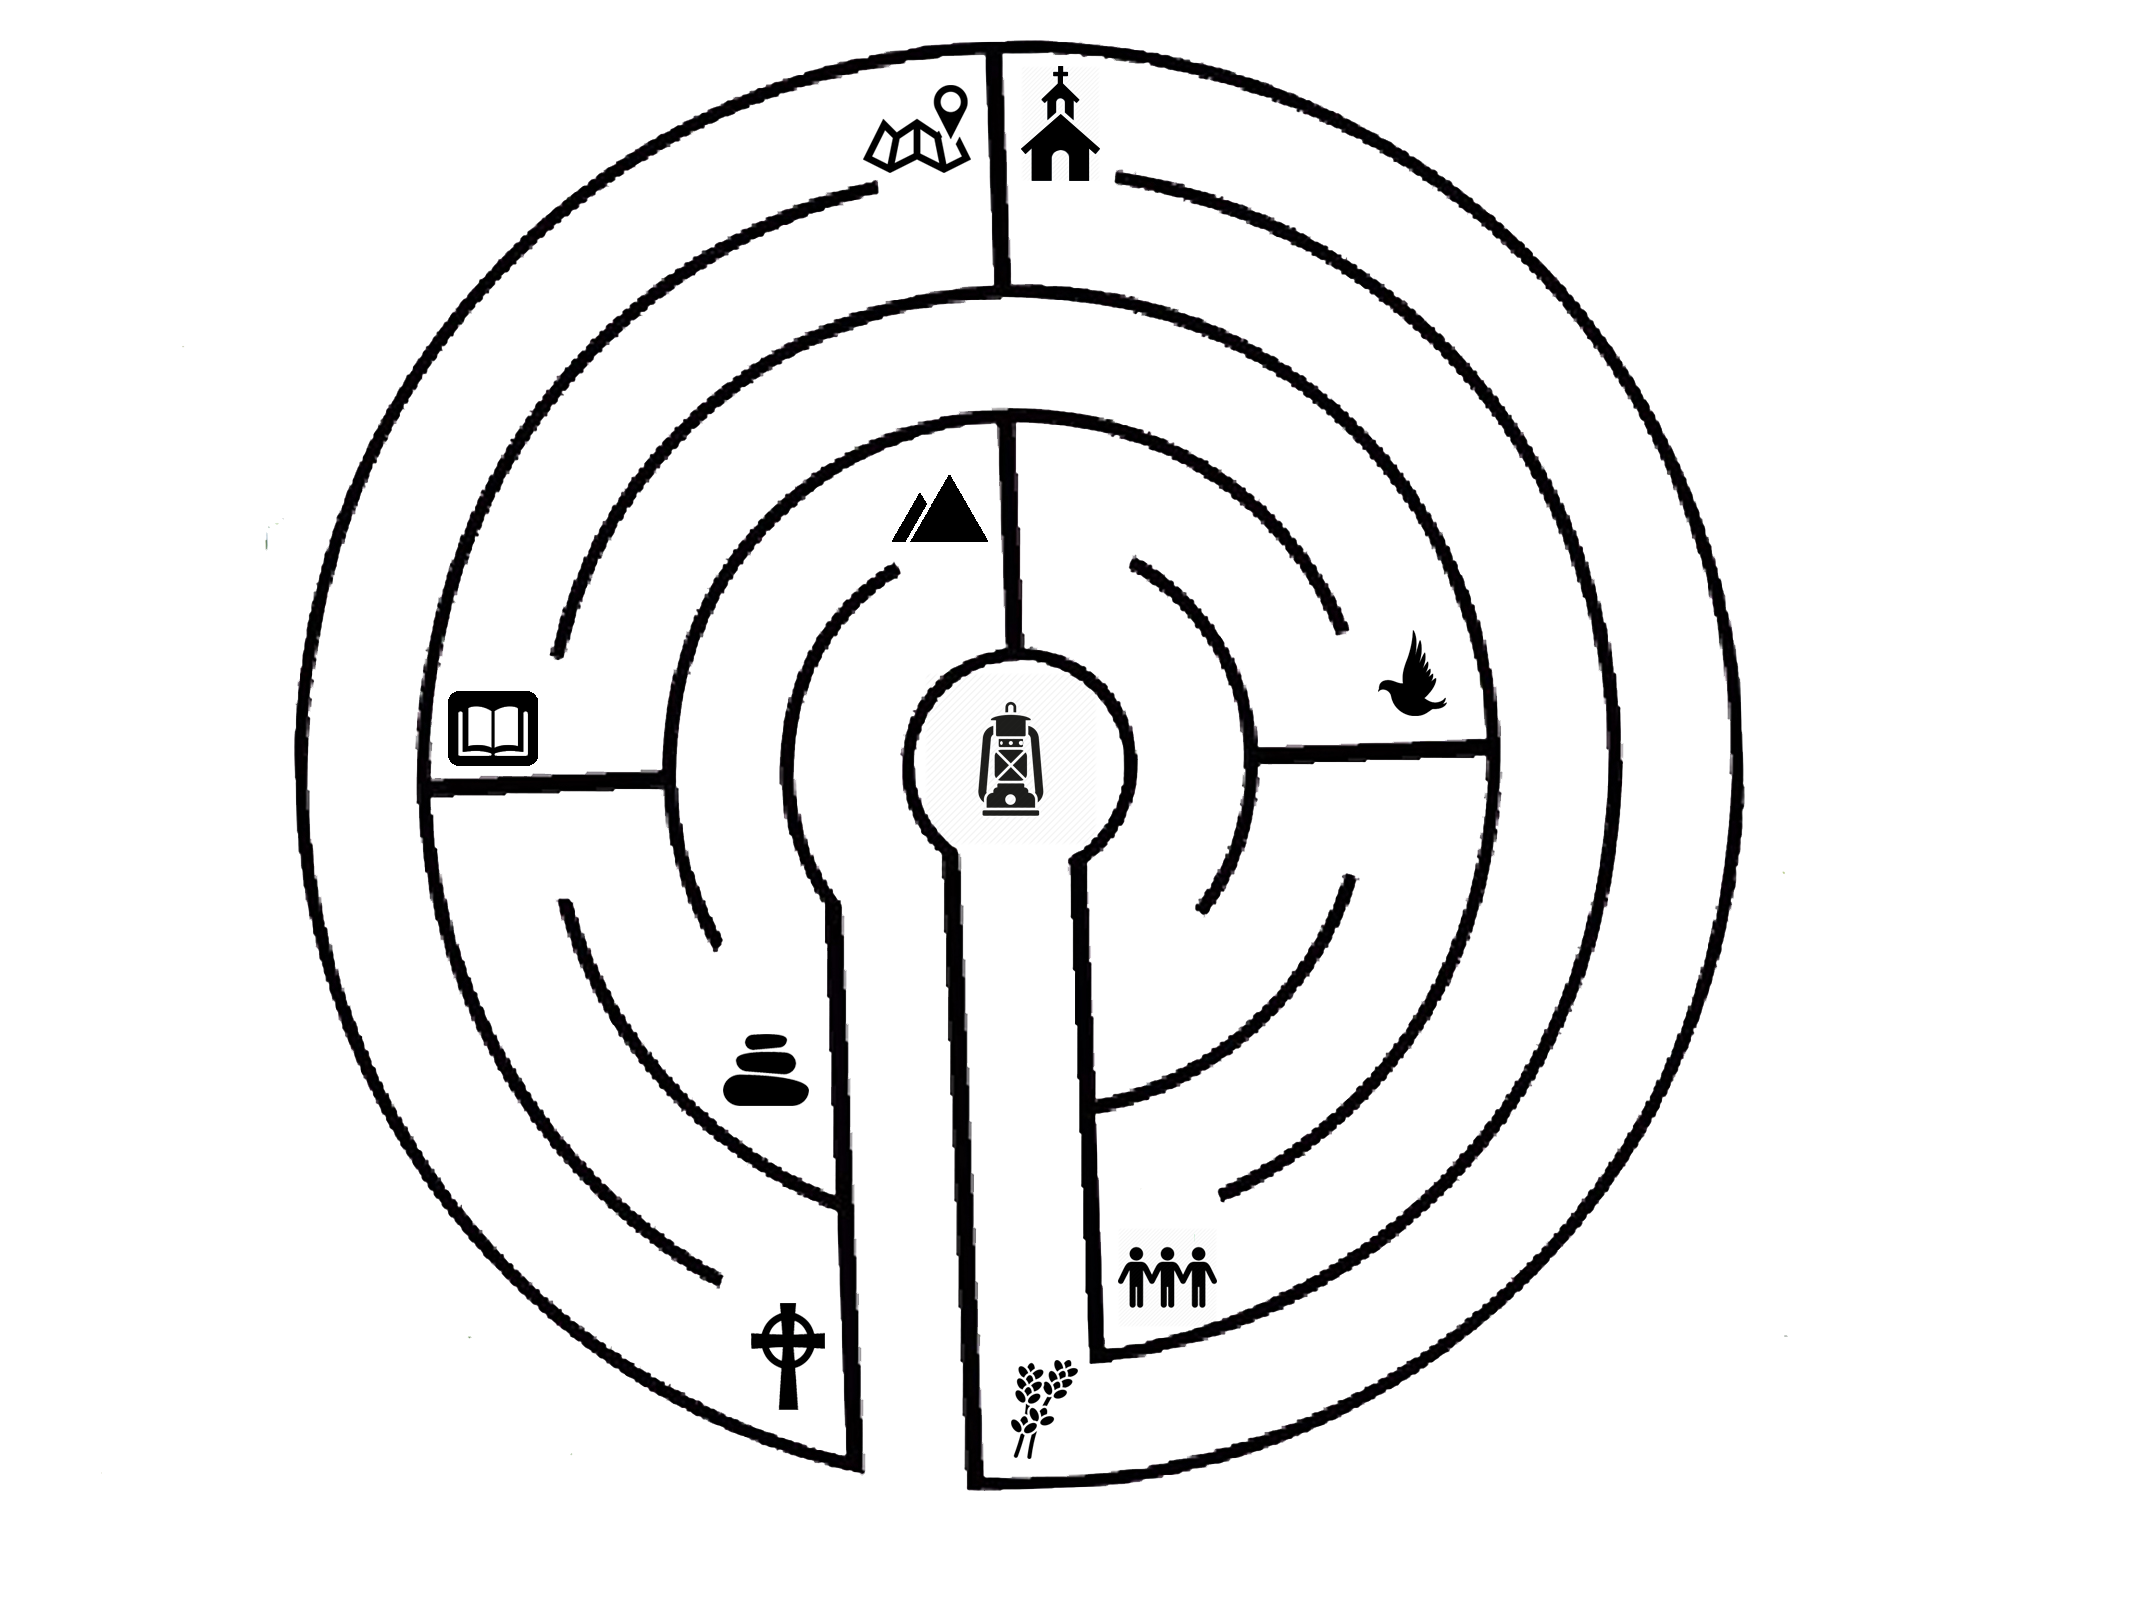 banner royalty free Labyrinth drawing art. The possibilities of prayer